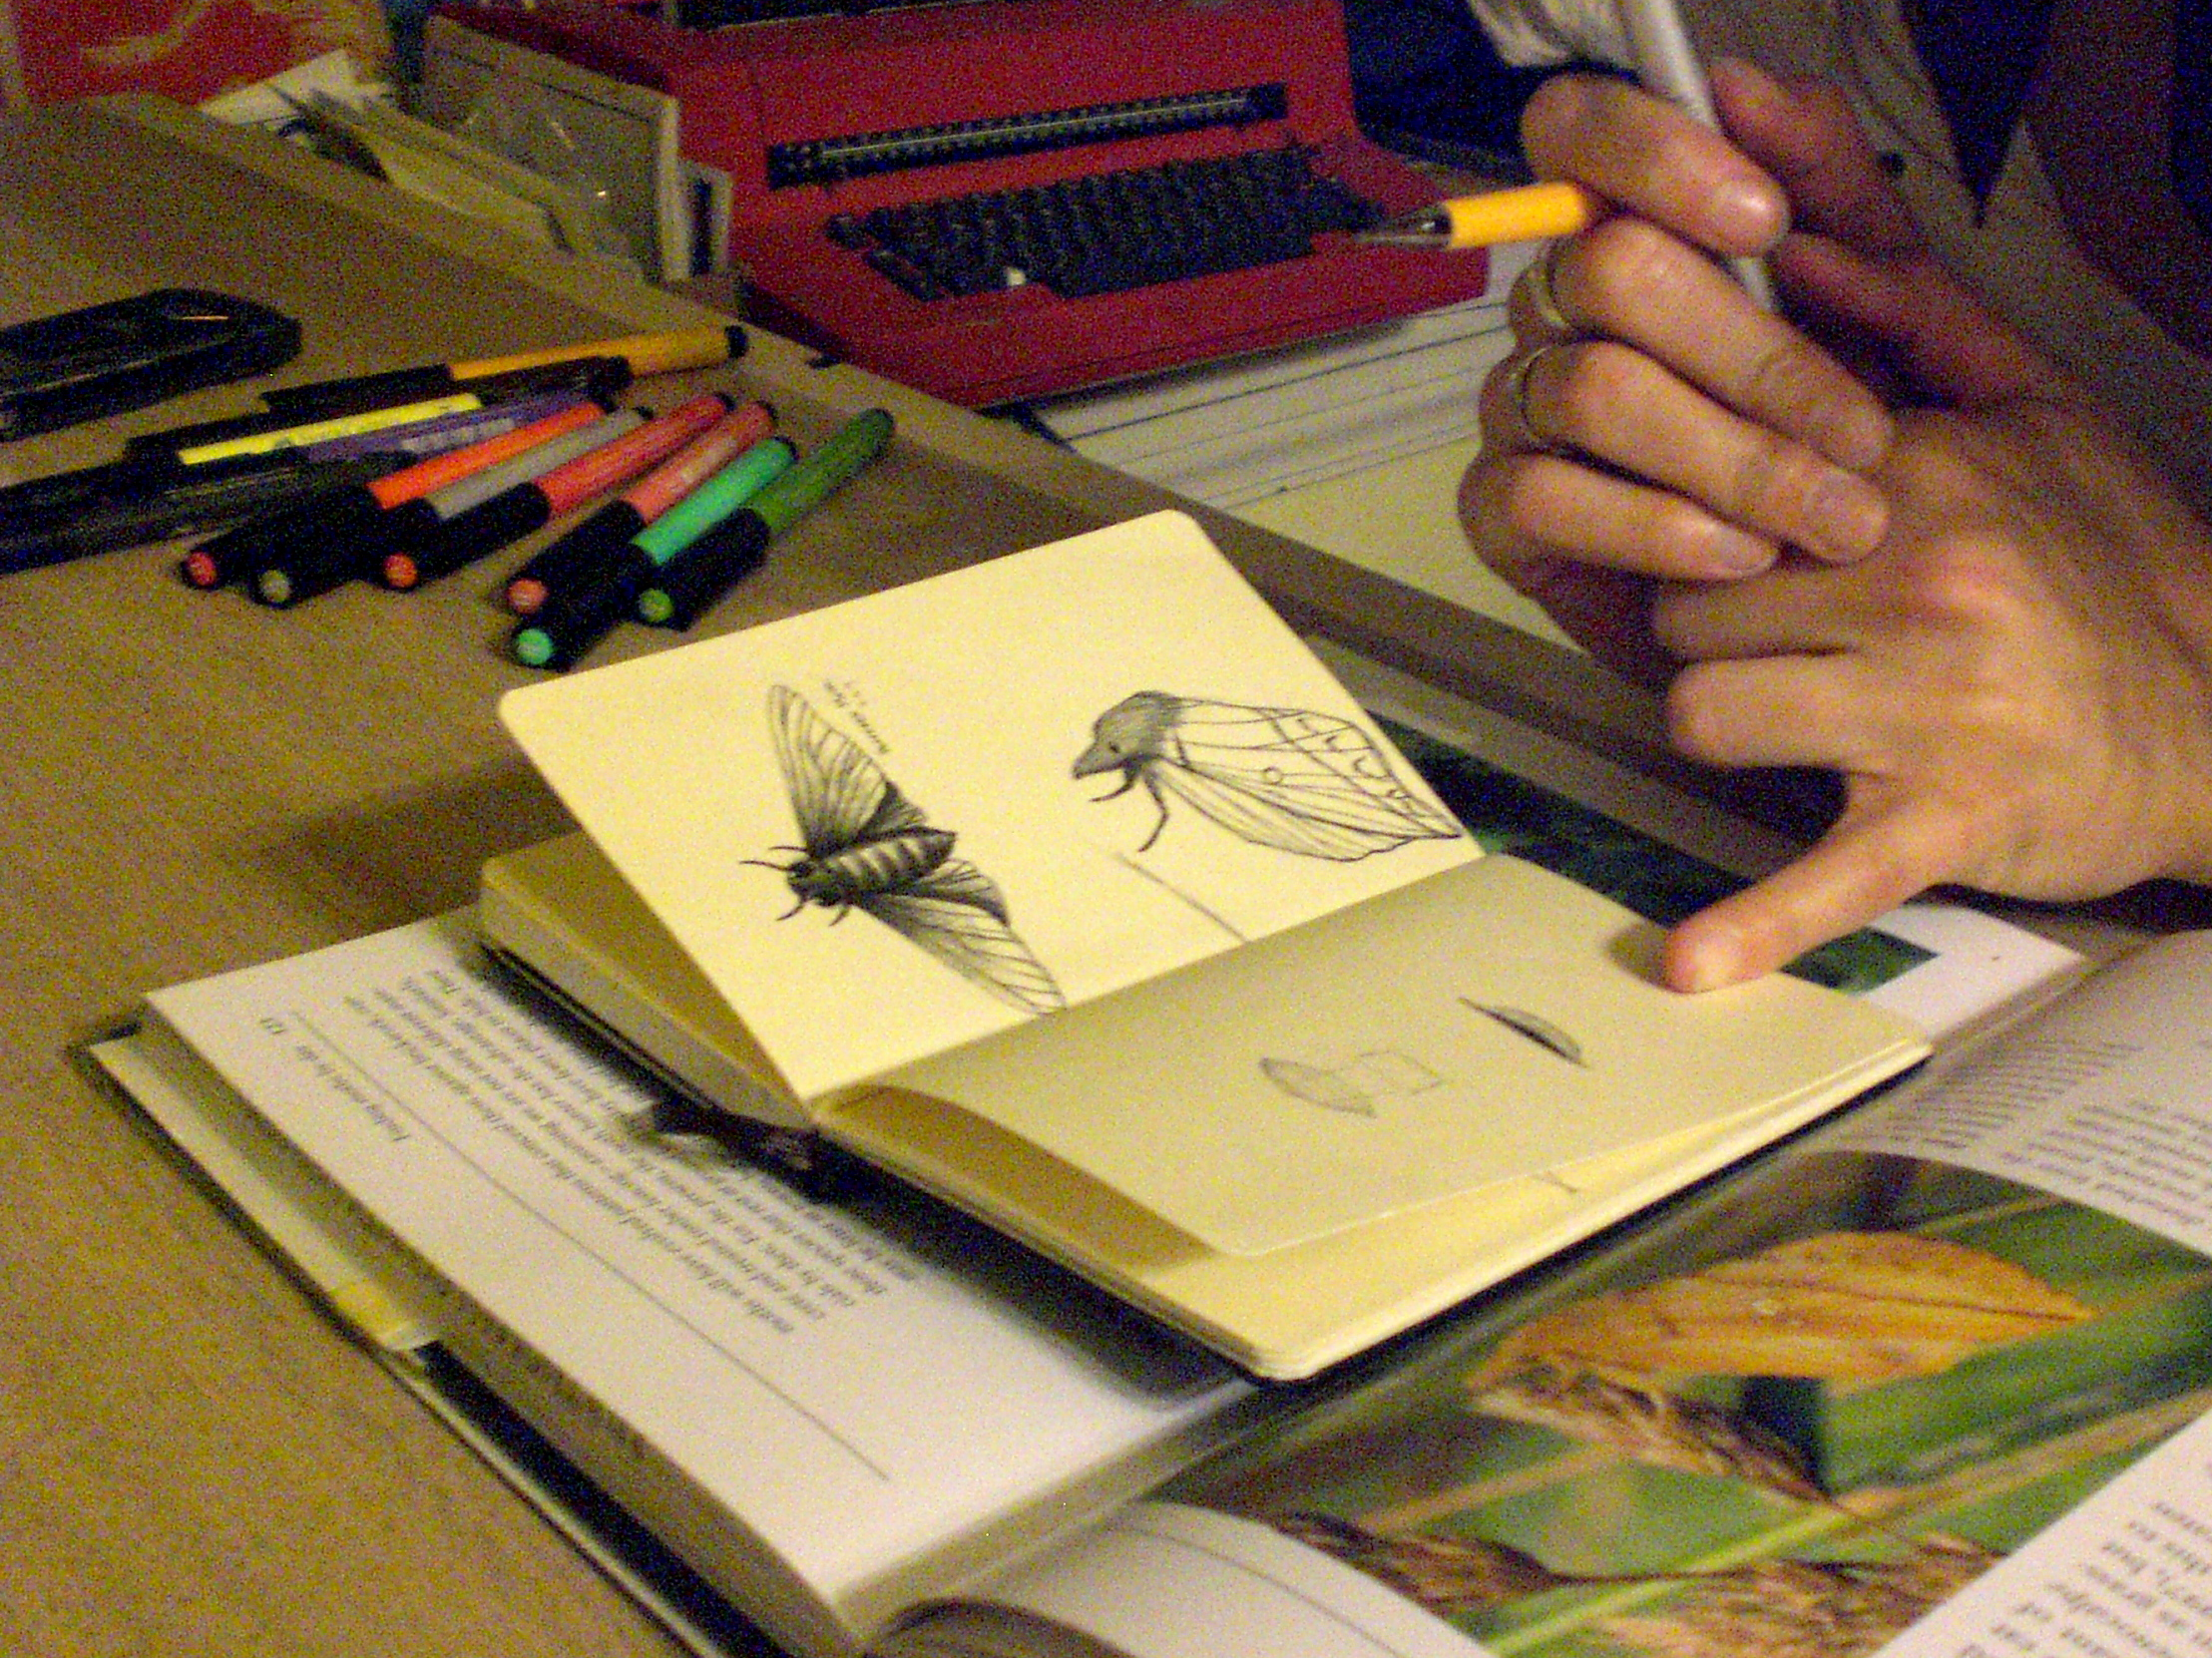 Christina Lafontaine drawing some moths at the IPRC in 2009